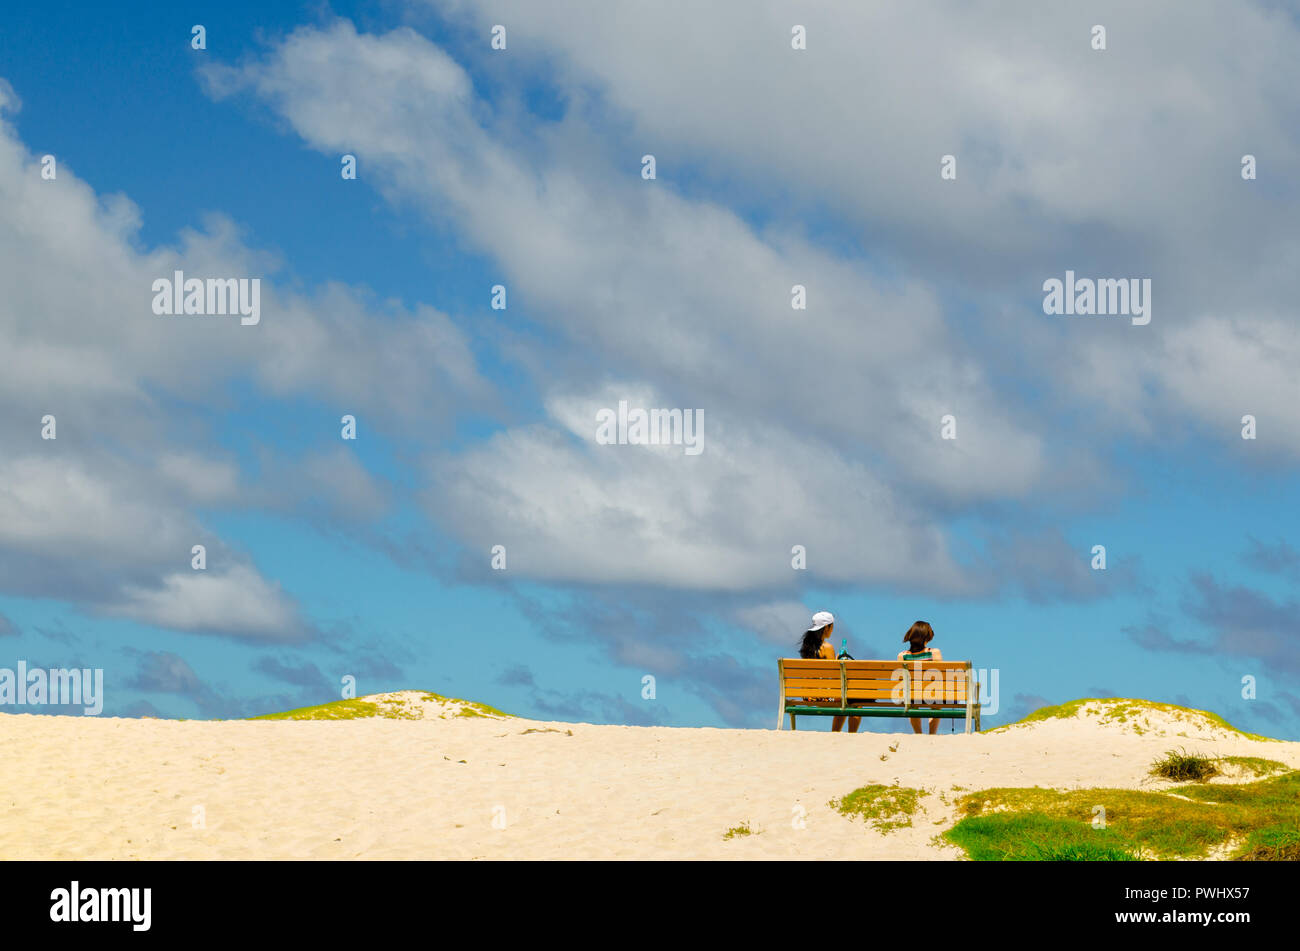 Two girls sitting on a bank in the beach - Stock Image